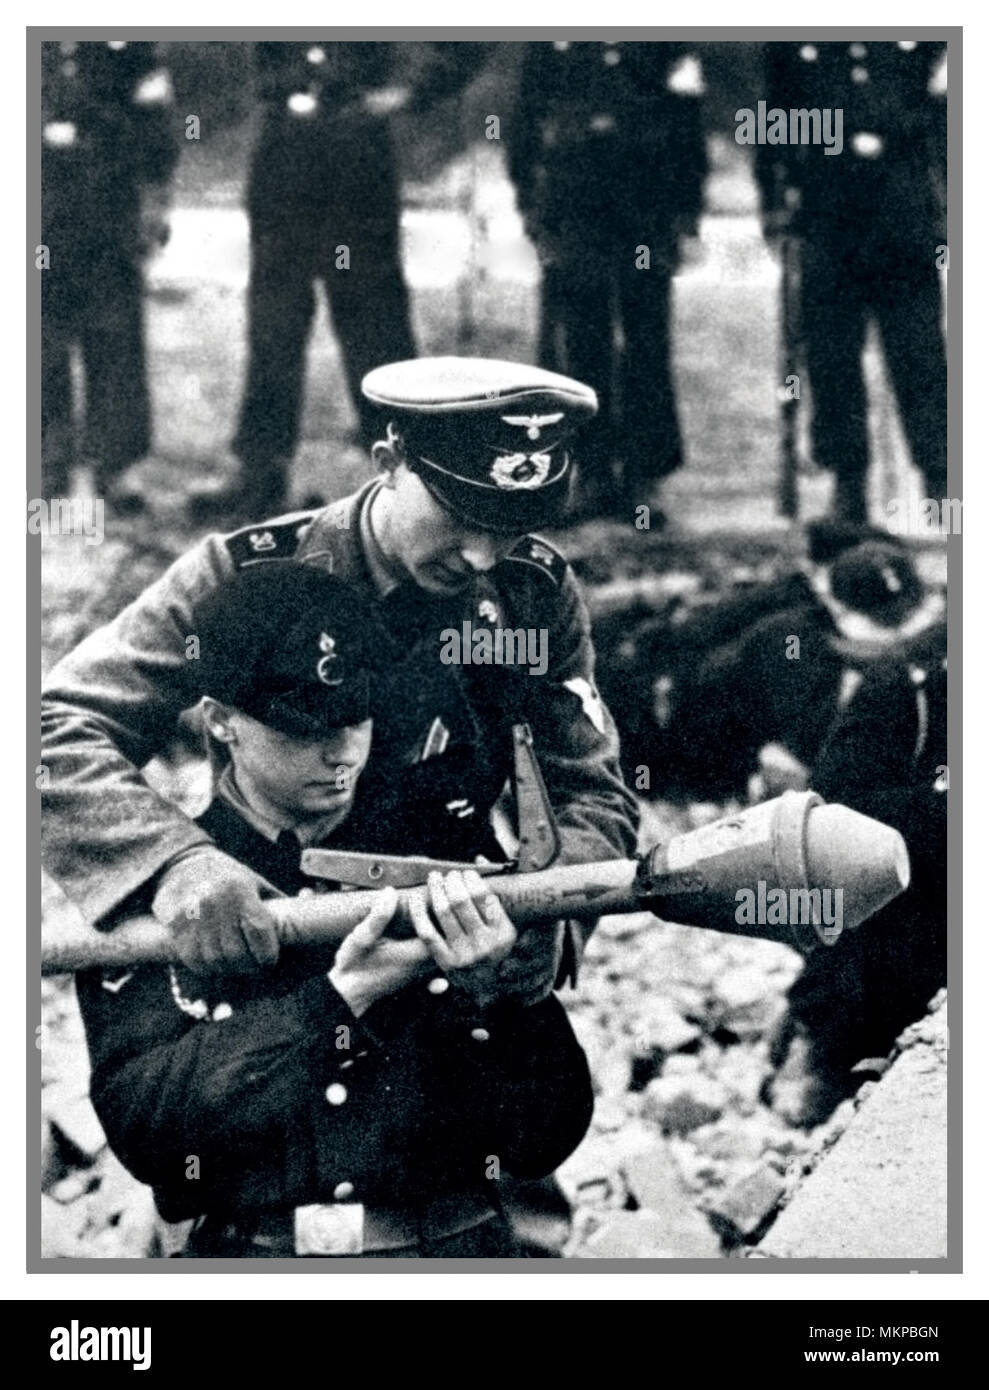 PANZERFAUST WW2 The German defense of Berlin. A German non-commissioned officer teaches a member of Hitler Youth the skills of firing a Panzerfaust, grenade launcher.They were the elite core of young troops under command of General Walter Wenck. At dawn on 28 April, the youth divisions Clausewitz, Scharnhorst and Theodor Körner were the vanguard of XII Army's offensive from south-west, attempting to break through the Soviet encirclement.They were made up of recent Hitler Youth, now young men from officer training schools, making them the best units,but outnumbered & catastrophically defeated.. - Stock Image